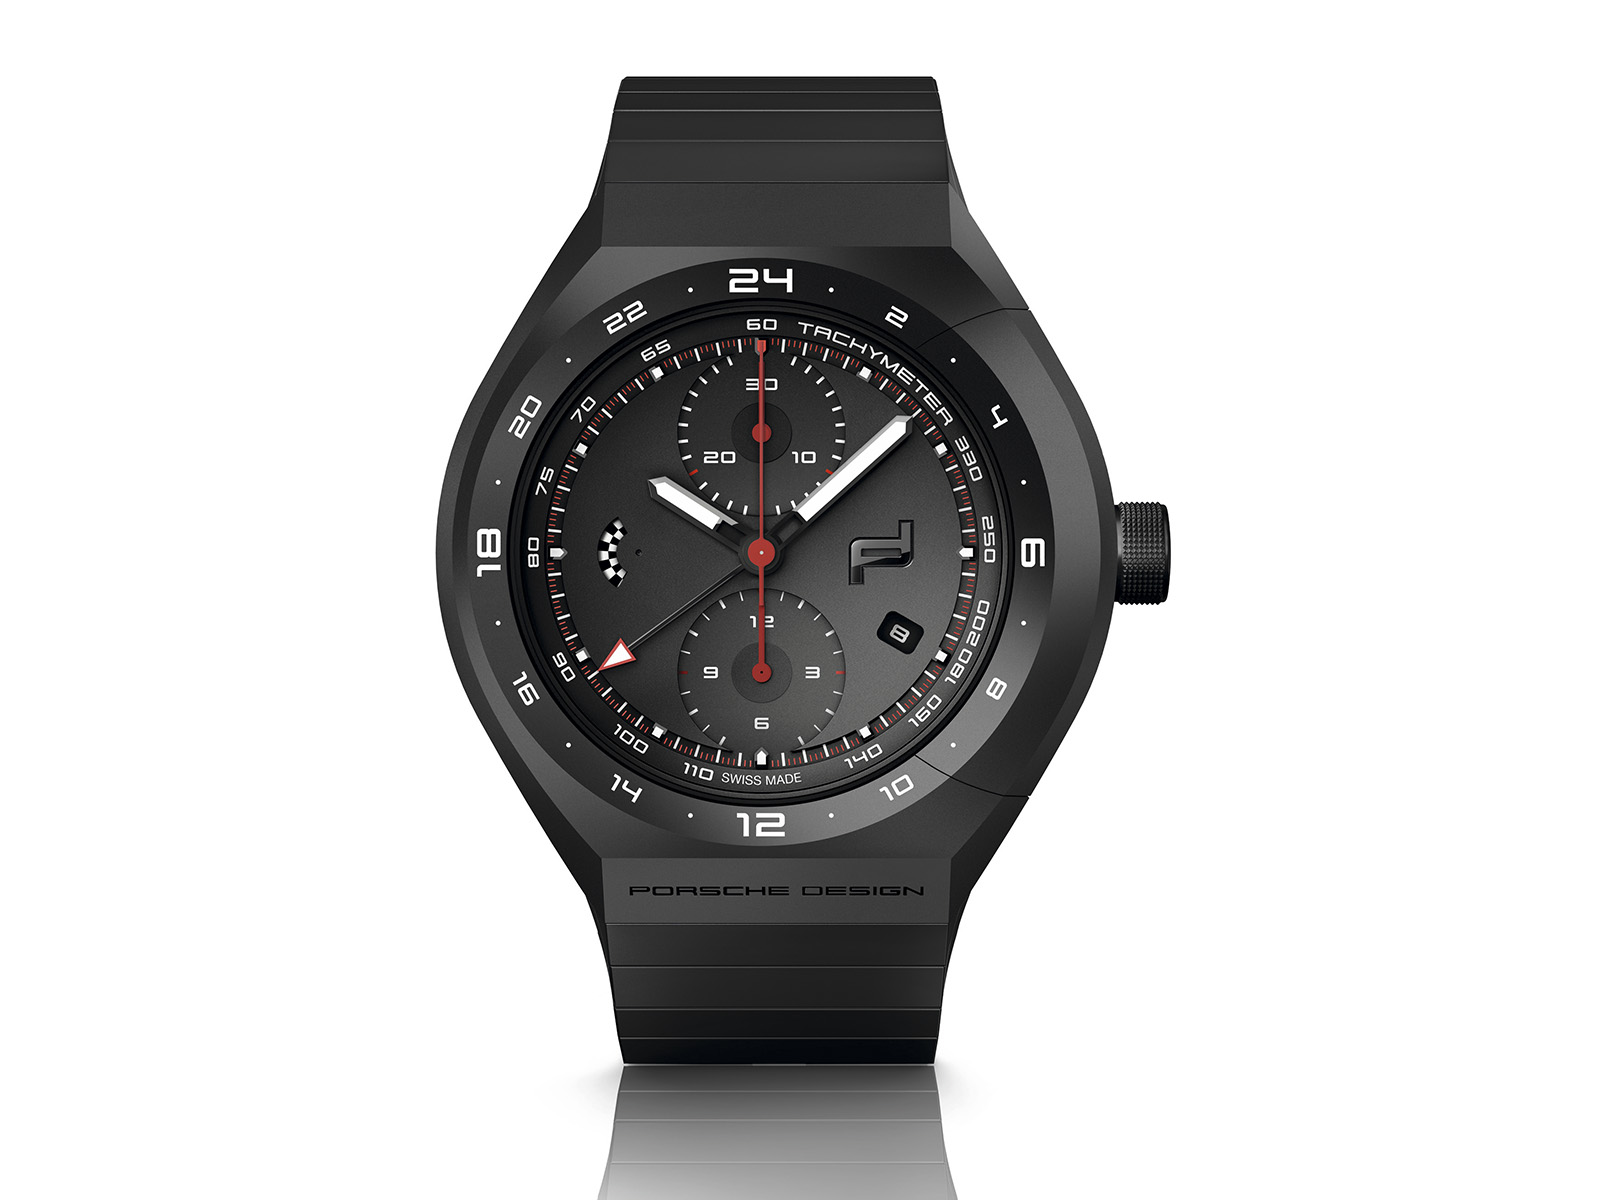 Porsche Design Monobloc Actuator 24H - Chronotimer All Black